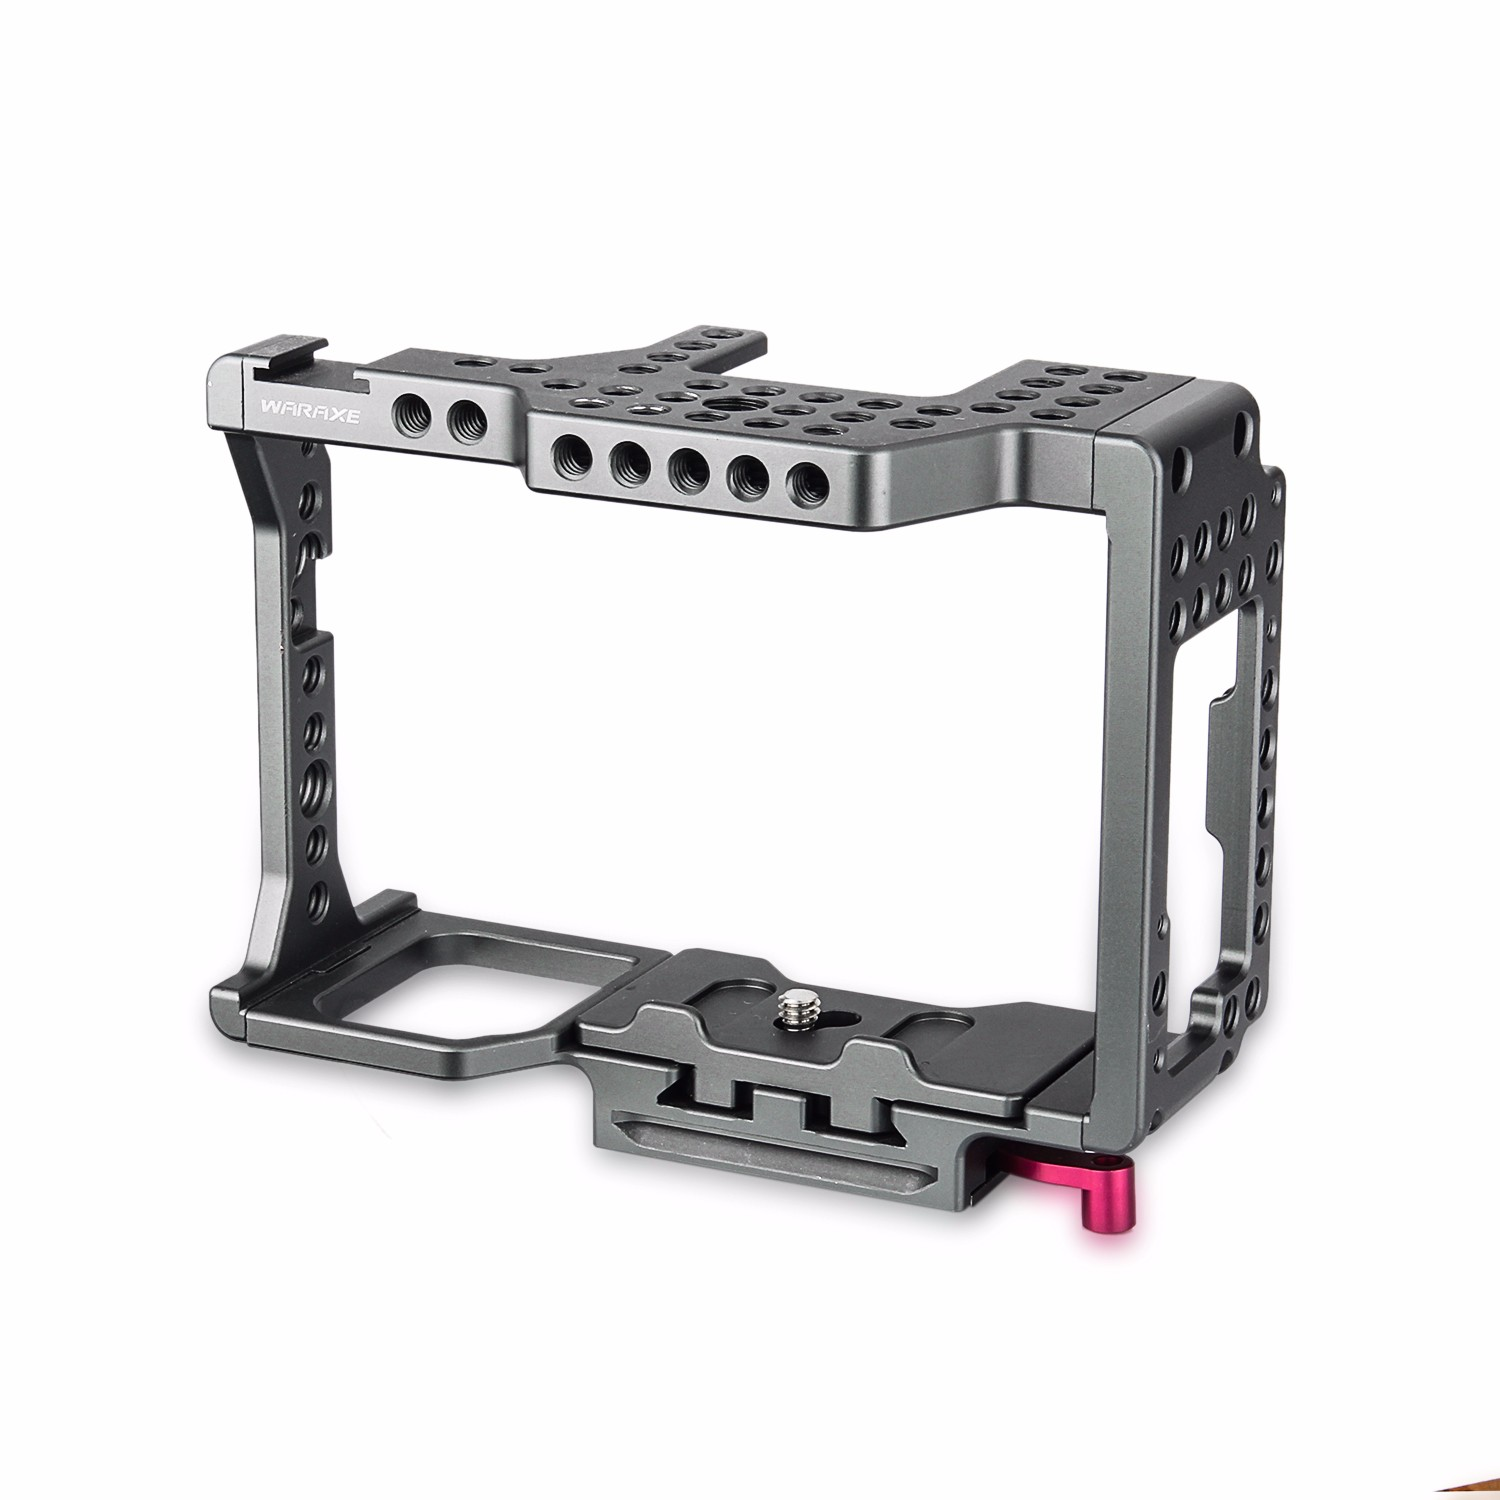 WARAXE A7 Camera Cage Built-in Quick Release Fits Arca Swiss for Sony A7 A7R A7S A7 II A7R II A7S II Threaded Holes godox tt600s flash speedlite for sony multi interface mi shoe cameras a7 a7s a7r a7 ii a6300 etc